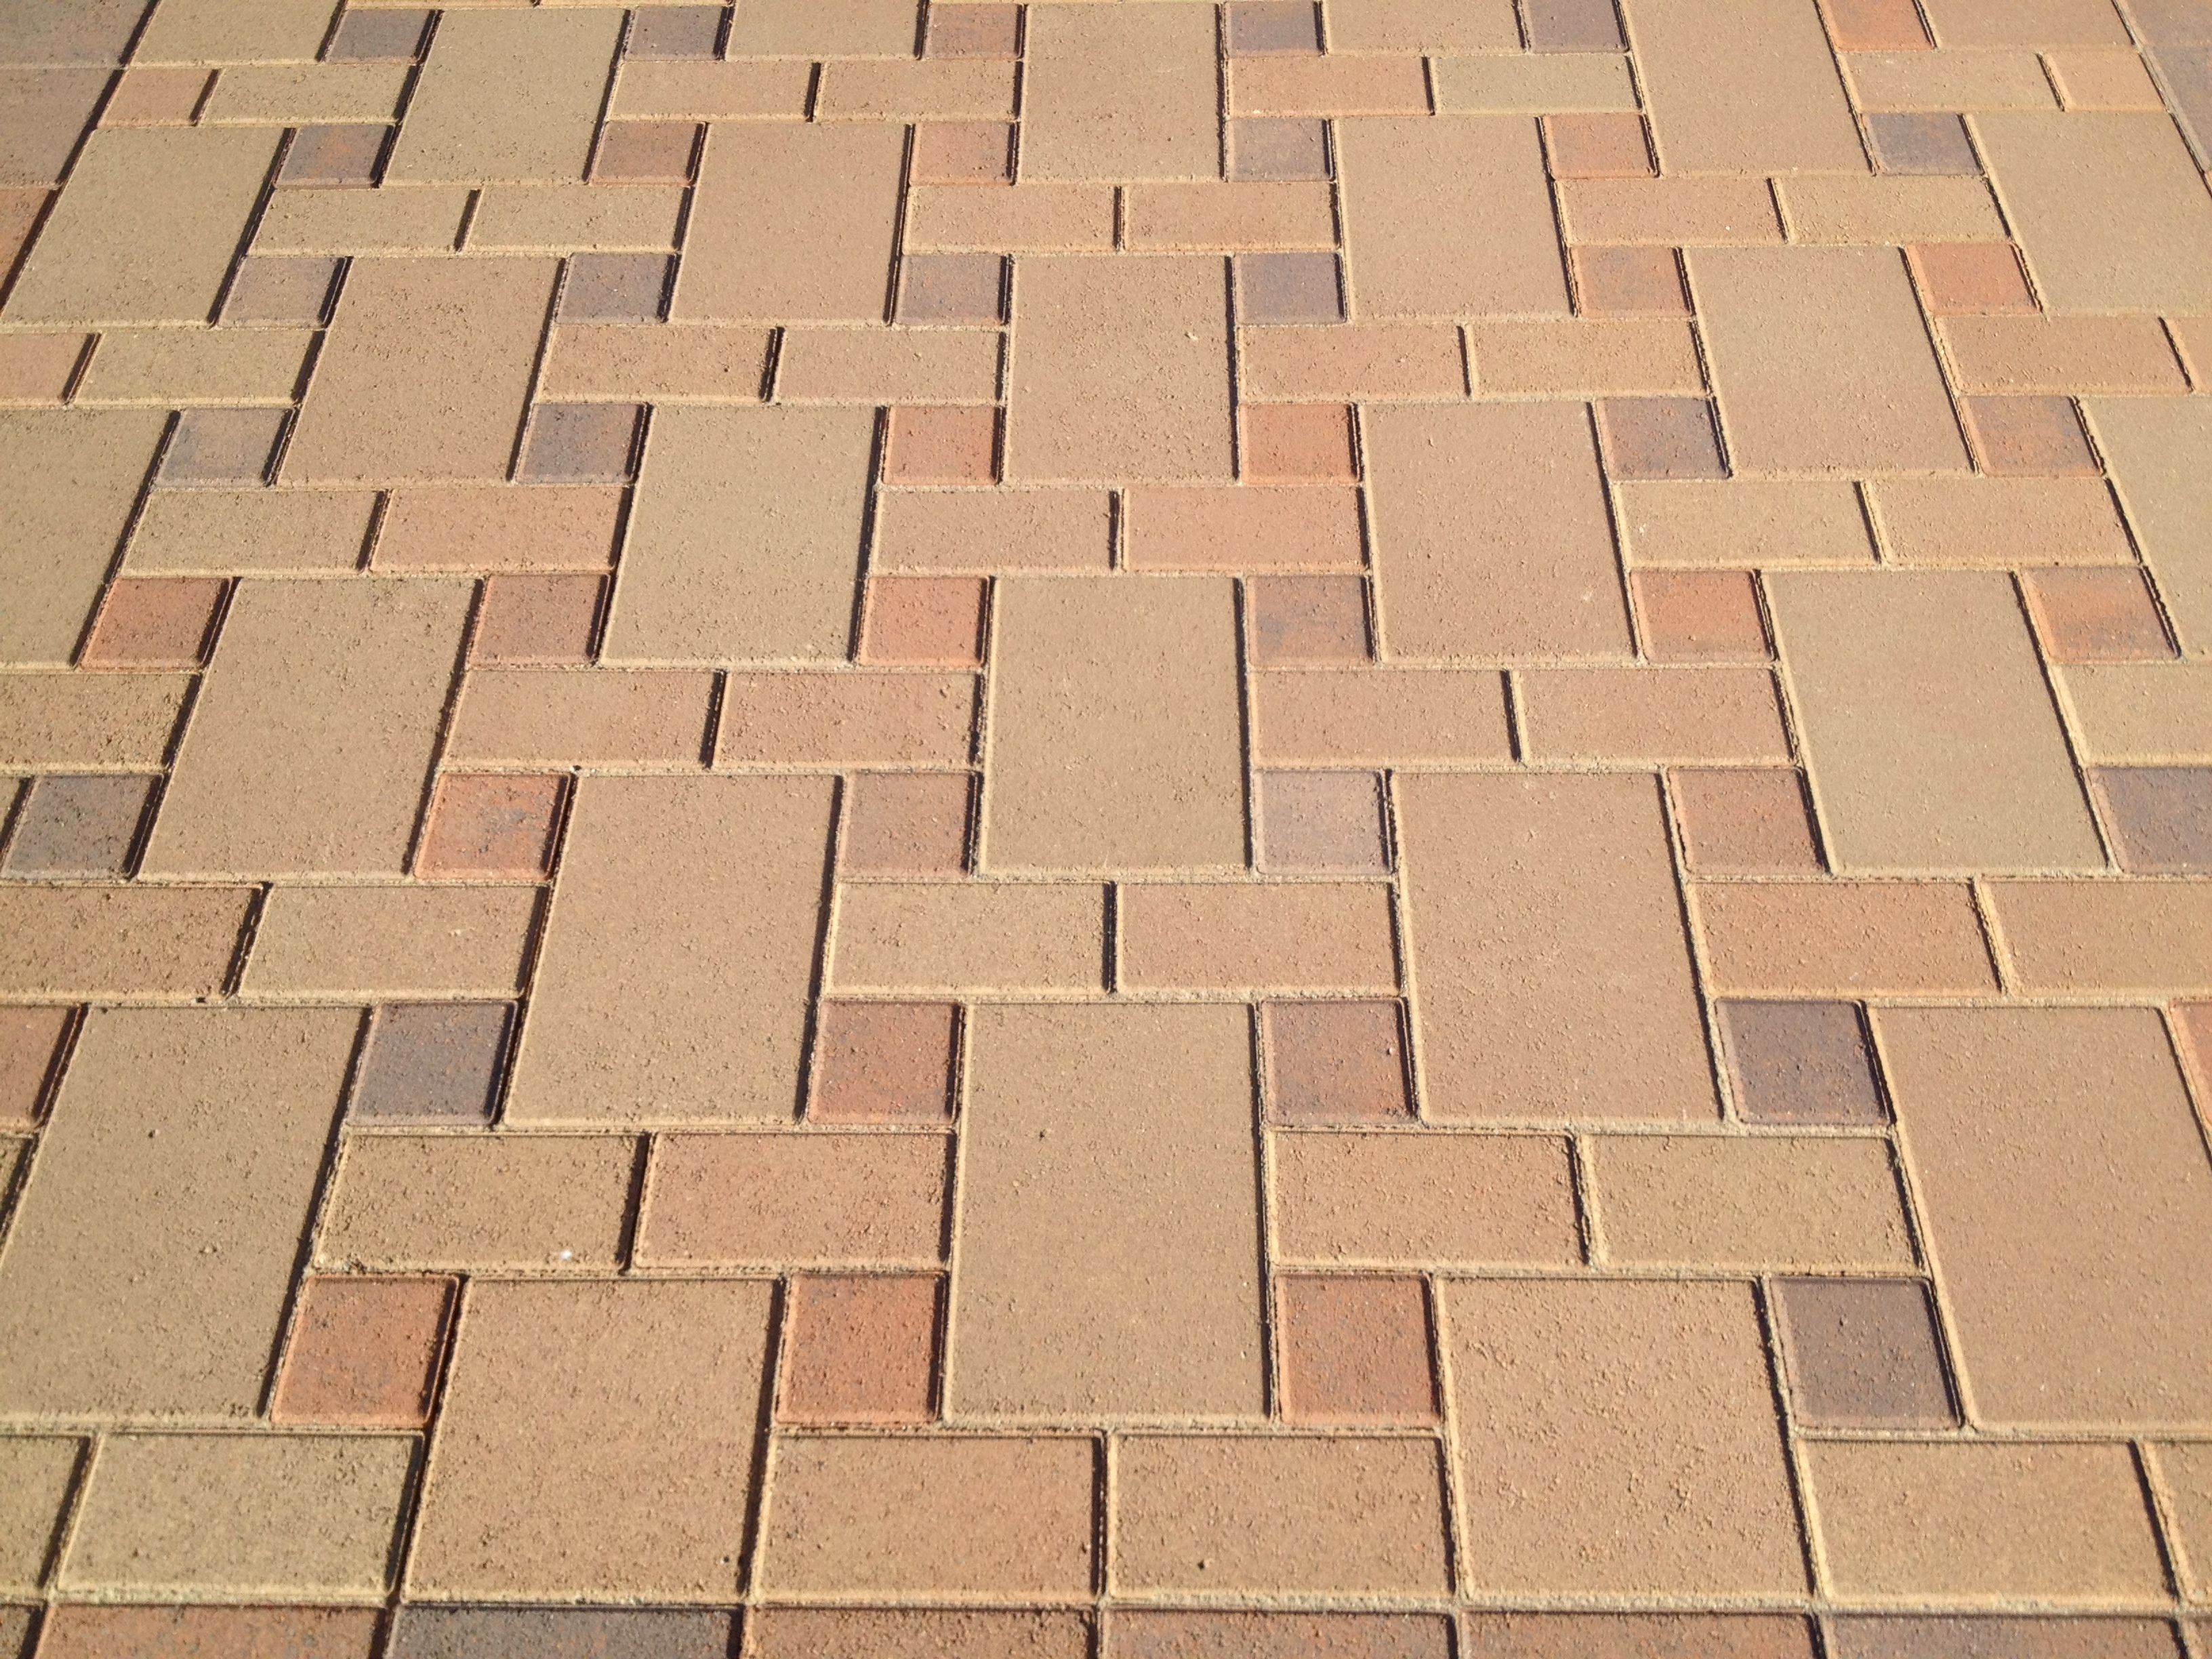 Mixing Orco Pavingstones Color Blends Products Pavers Hardscape Pavingstones Paving Stones